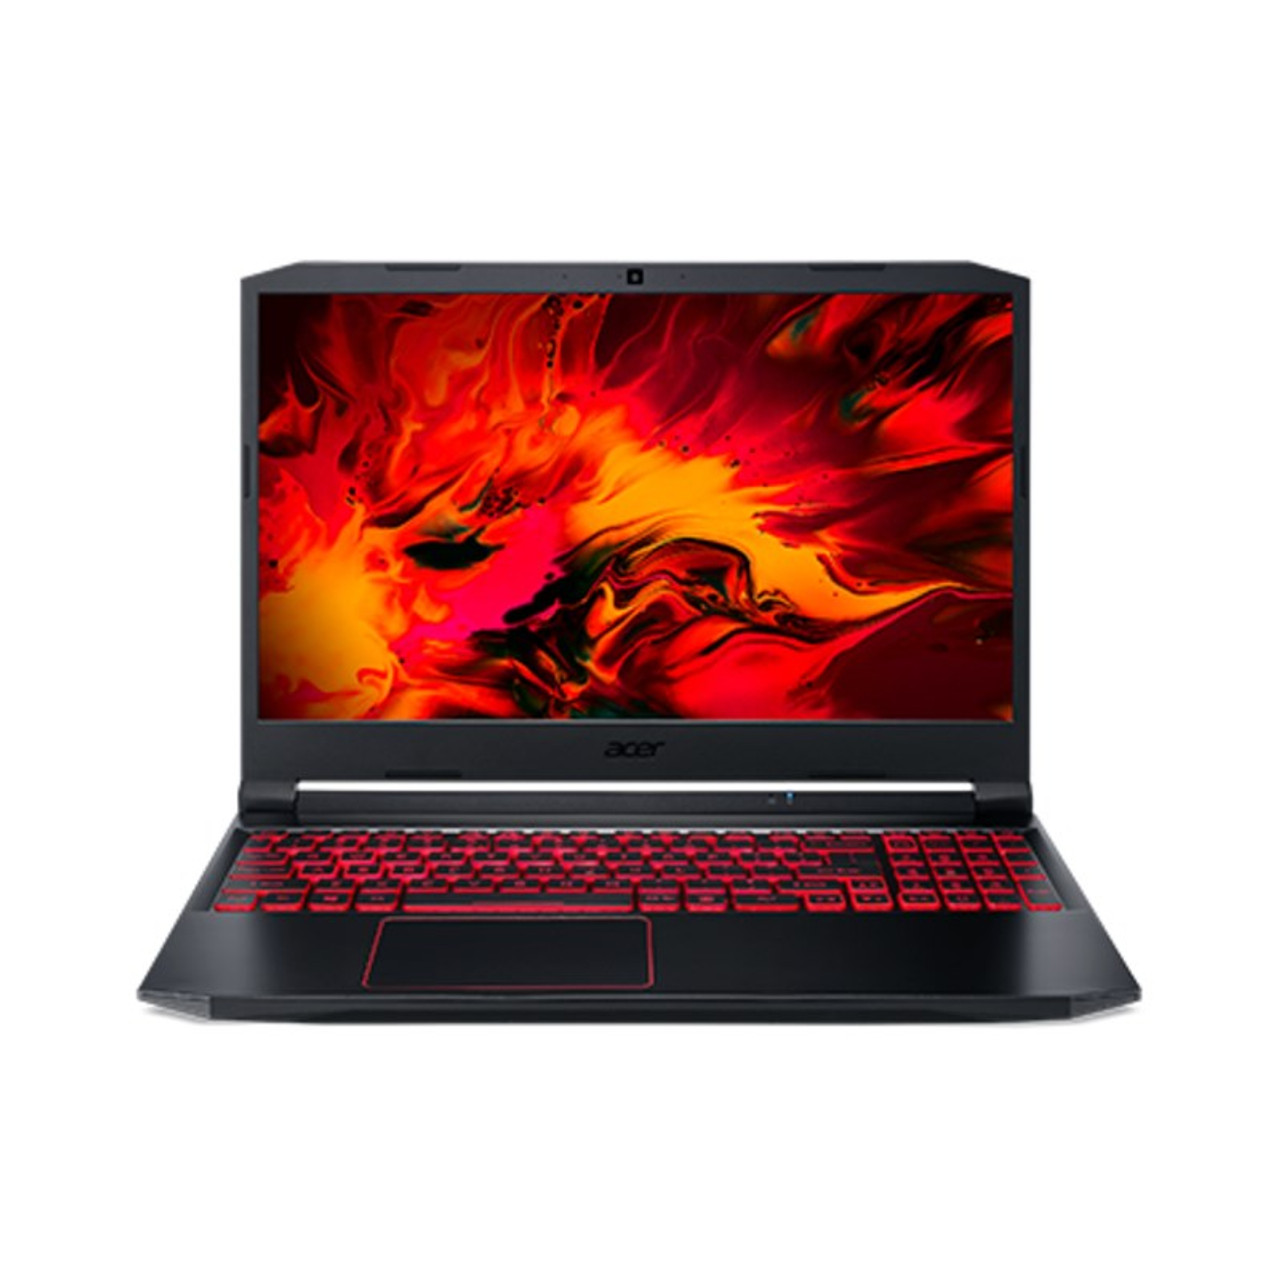 Image for Acer Nitro 5 Gaming 15.6in Laptop i7-10750H 16GB 512GB GTX 1650 W10H CX Computer Superstore